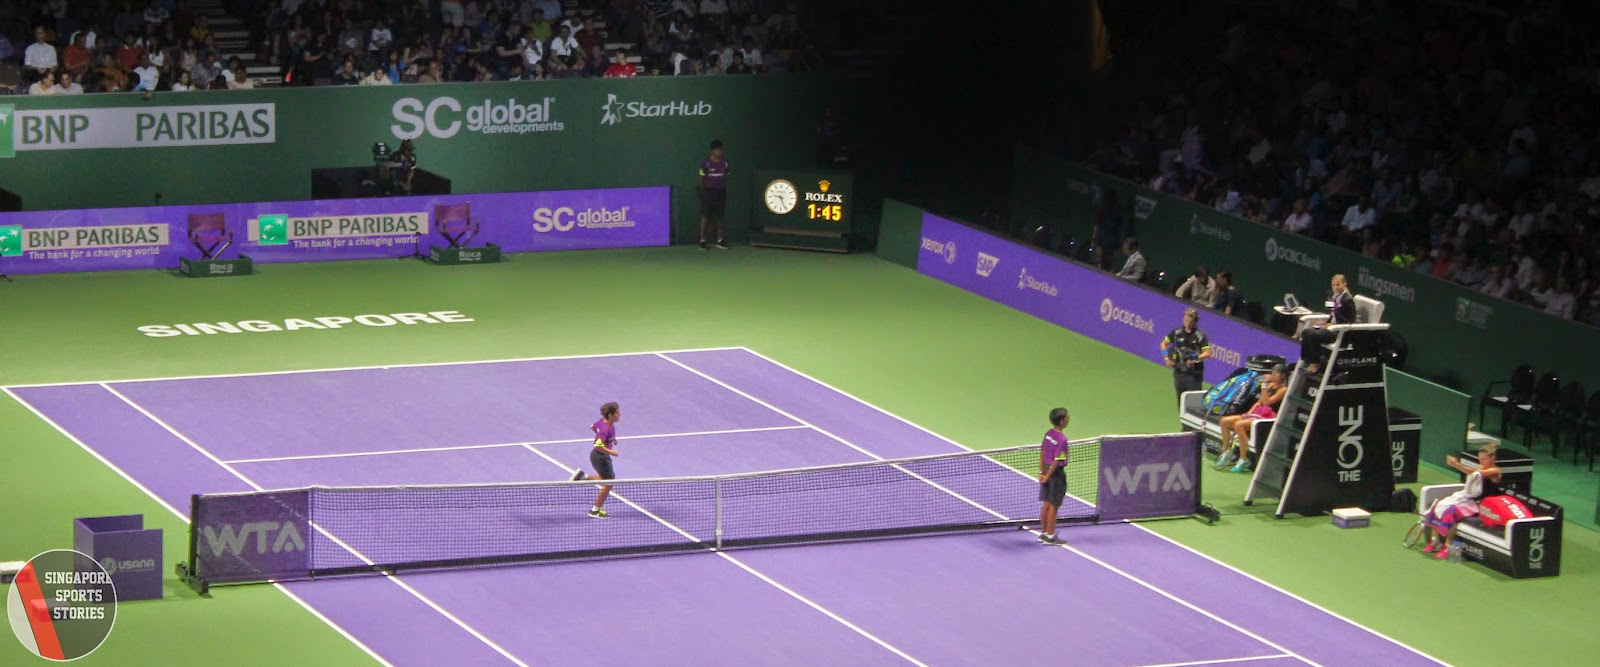 WTA Finals Singapore Ballkids tending to Ana Ivanovic and Simona Halep - Tennis